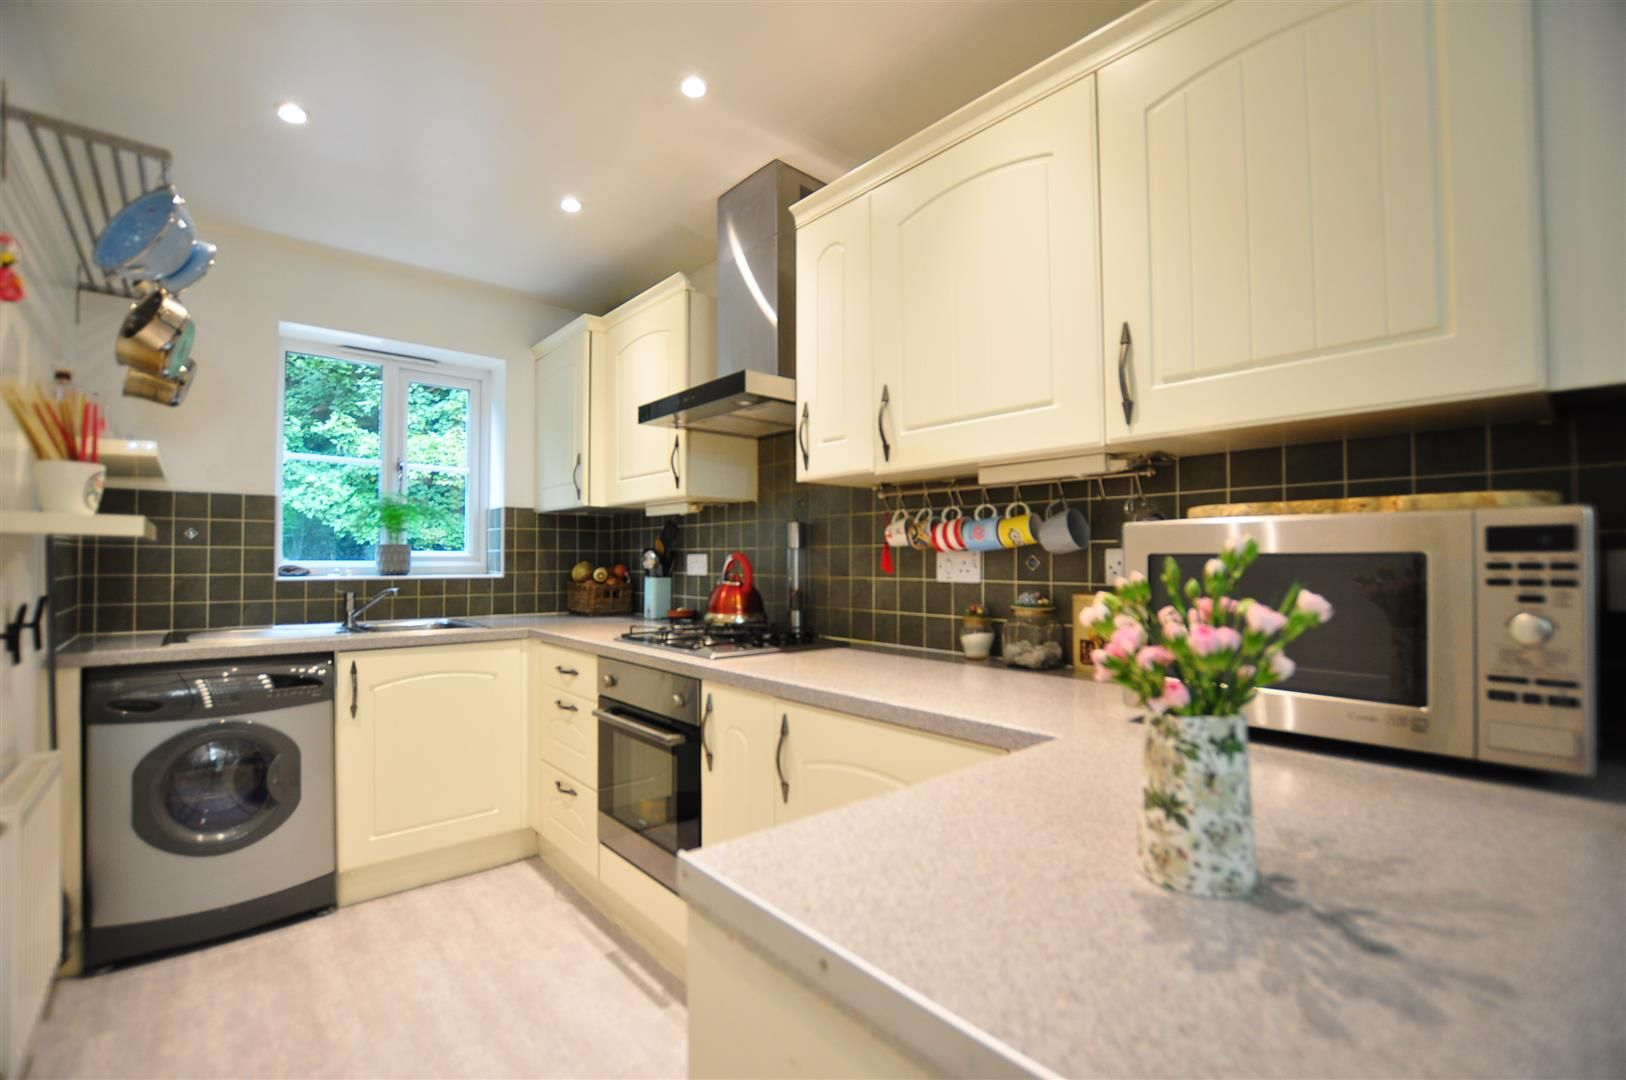 4 bed end-of-terrace for sale 5